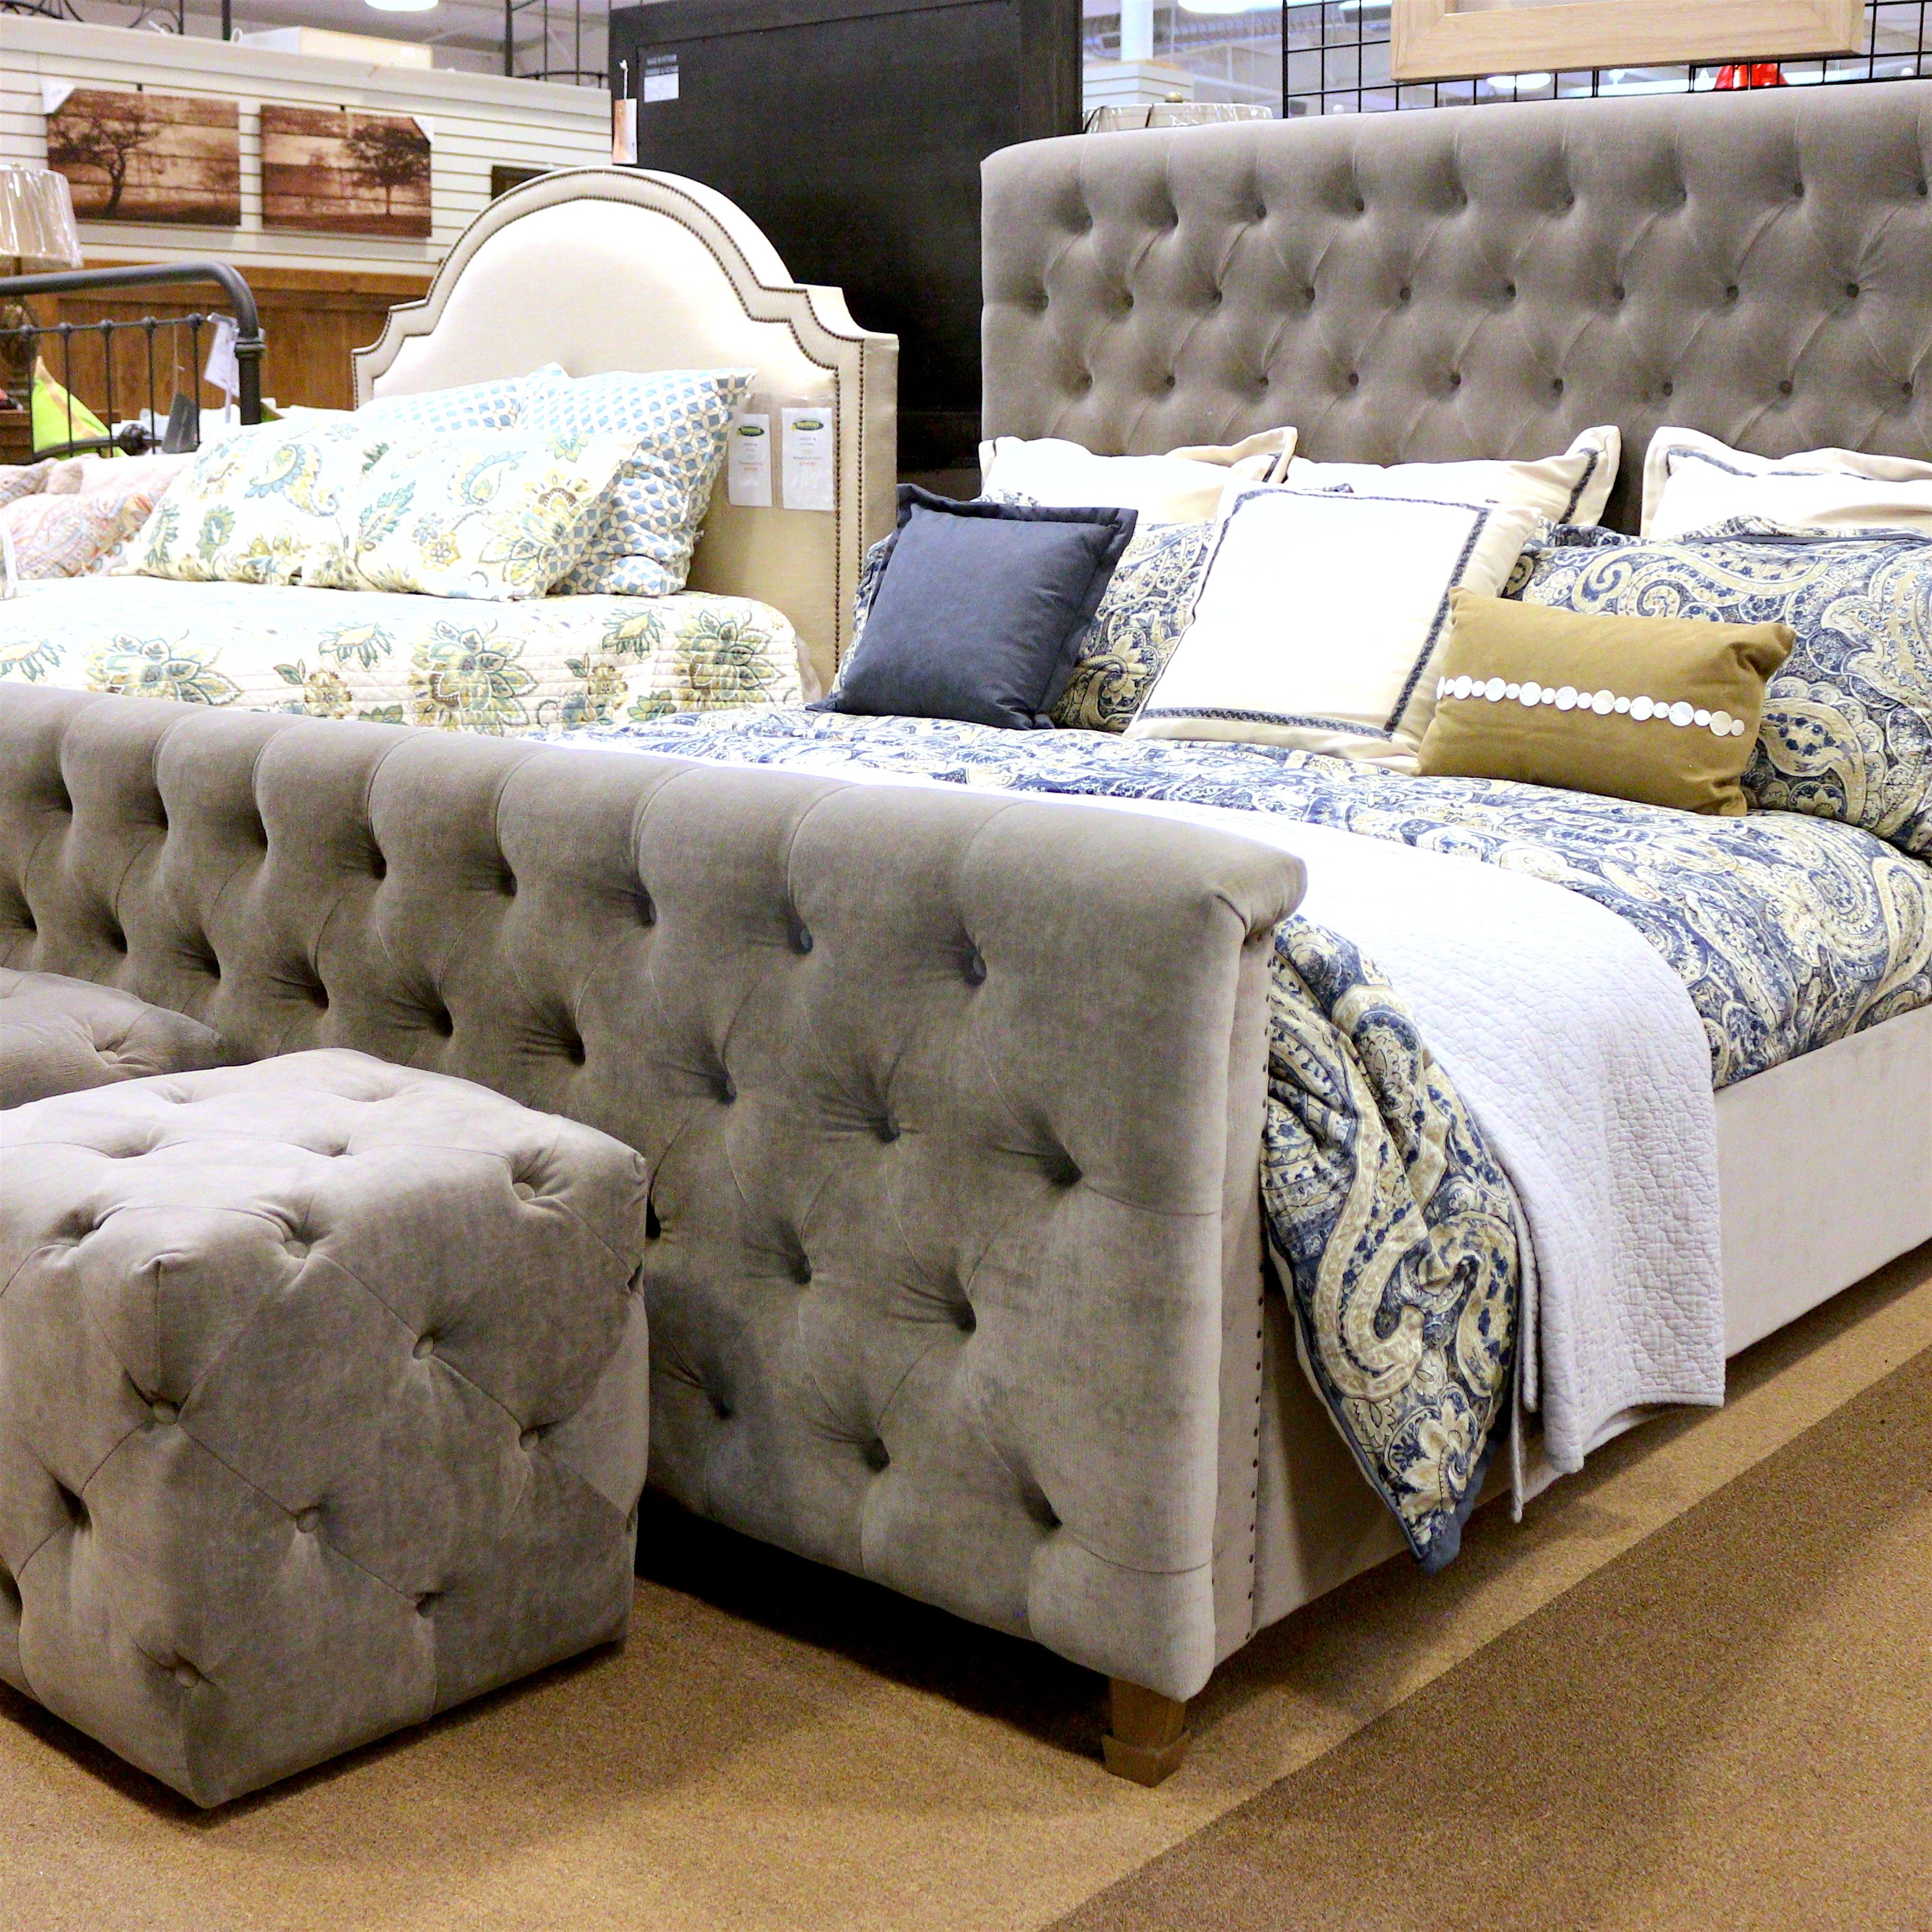 Find Furniture For Every Room In Your Home At Woodstock Outlet If You Re Looking And Are From Acworth Or Hiram Georgia Then